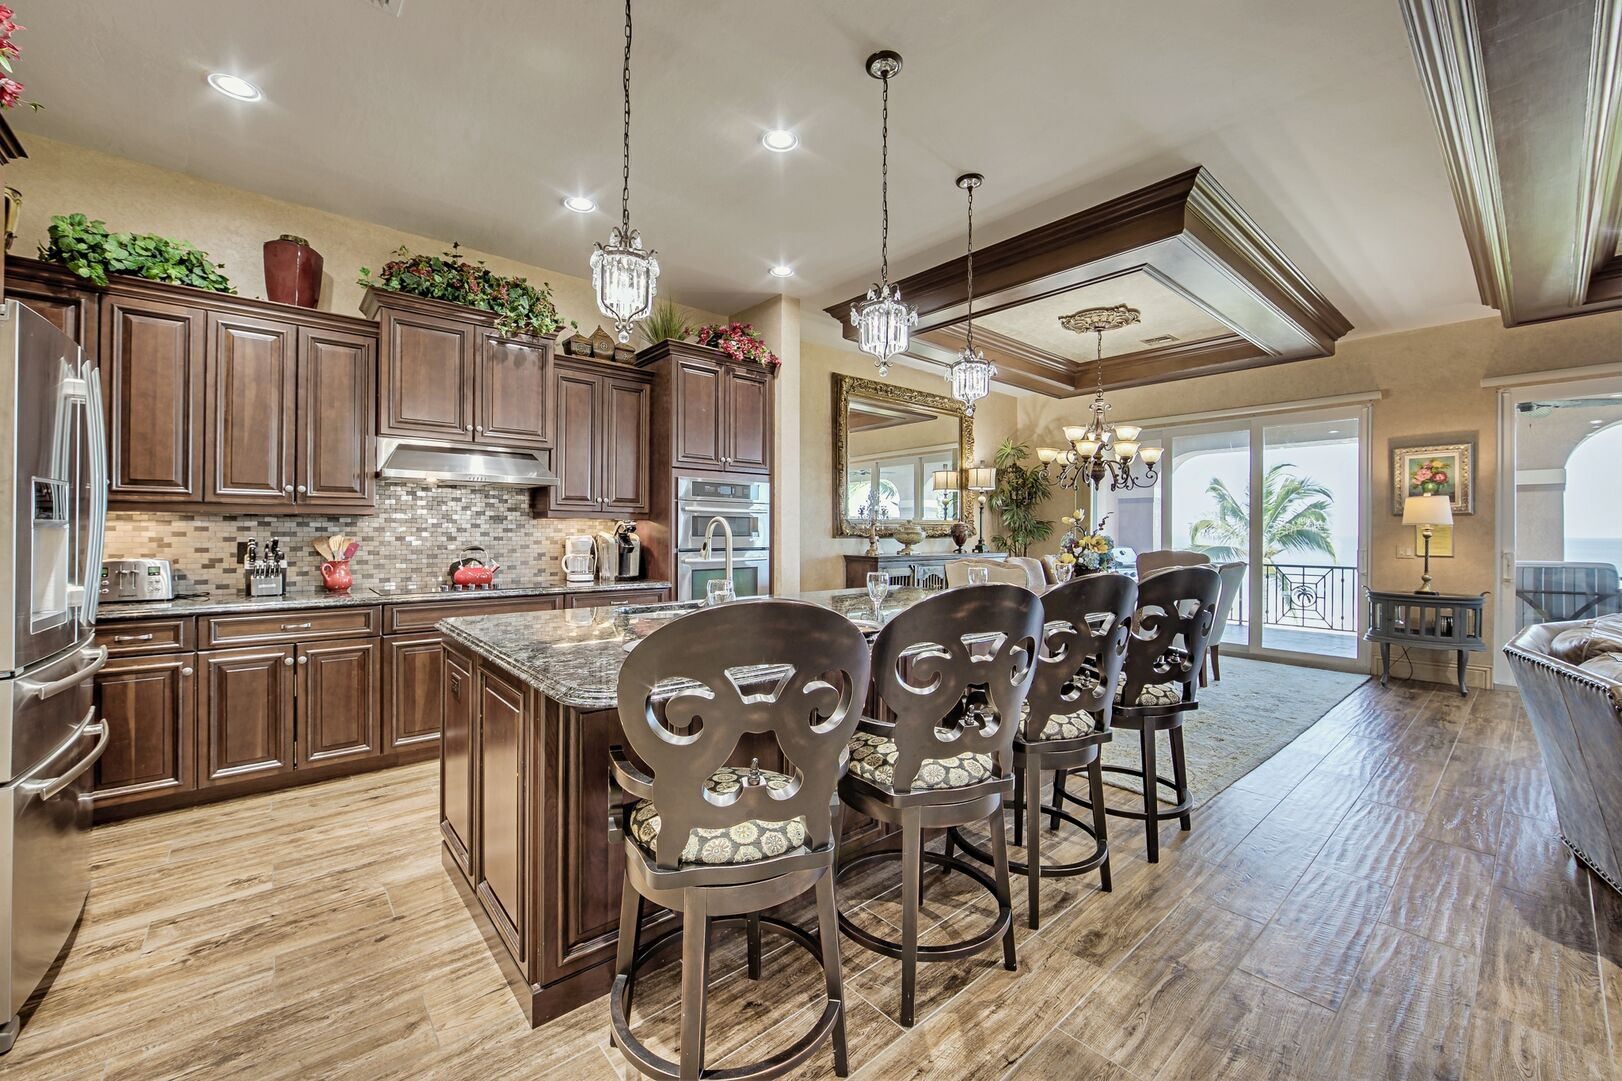 Kitchen with Island, High Chairs, Refrigerator, Dining Set and the Sliding Doors to the Balcony.